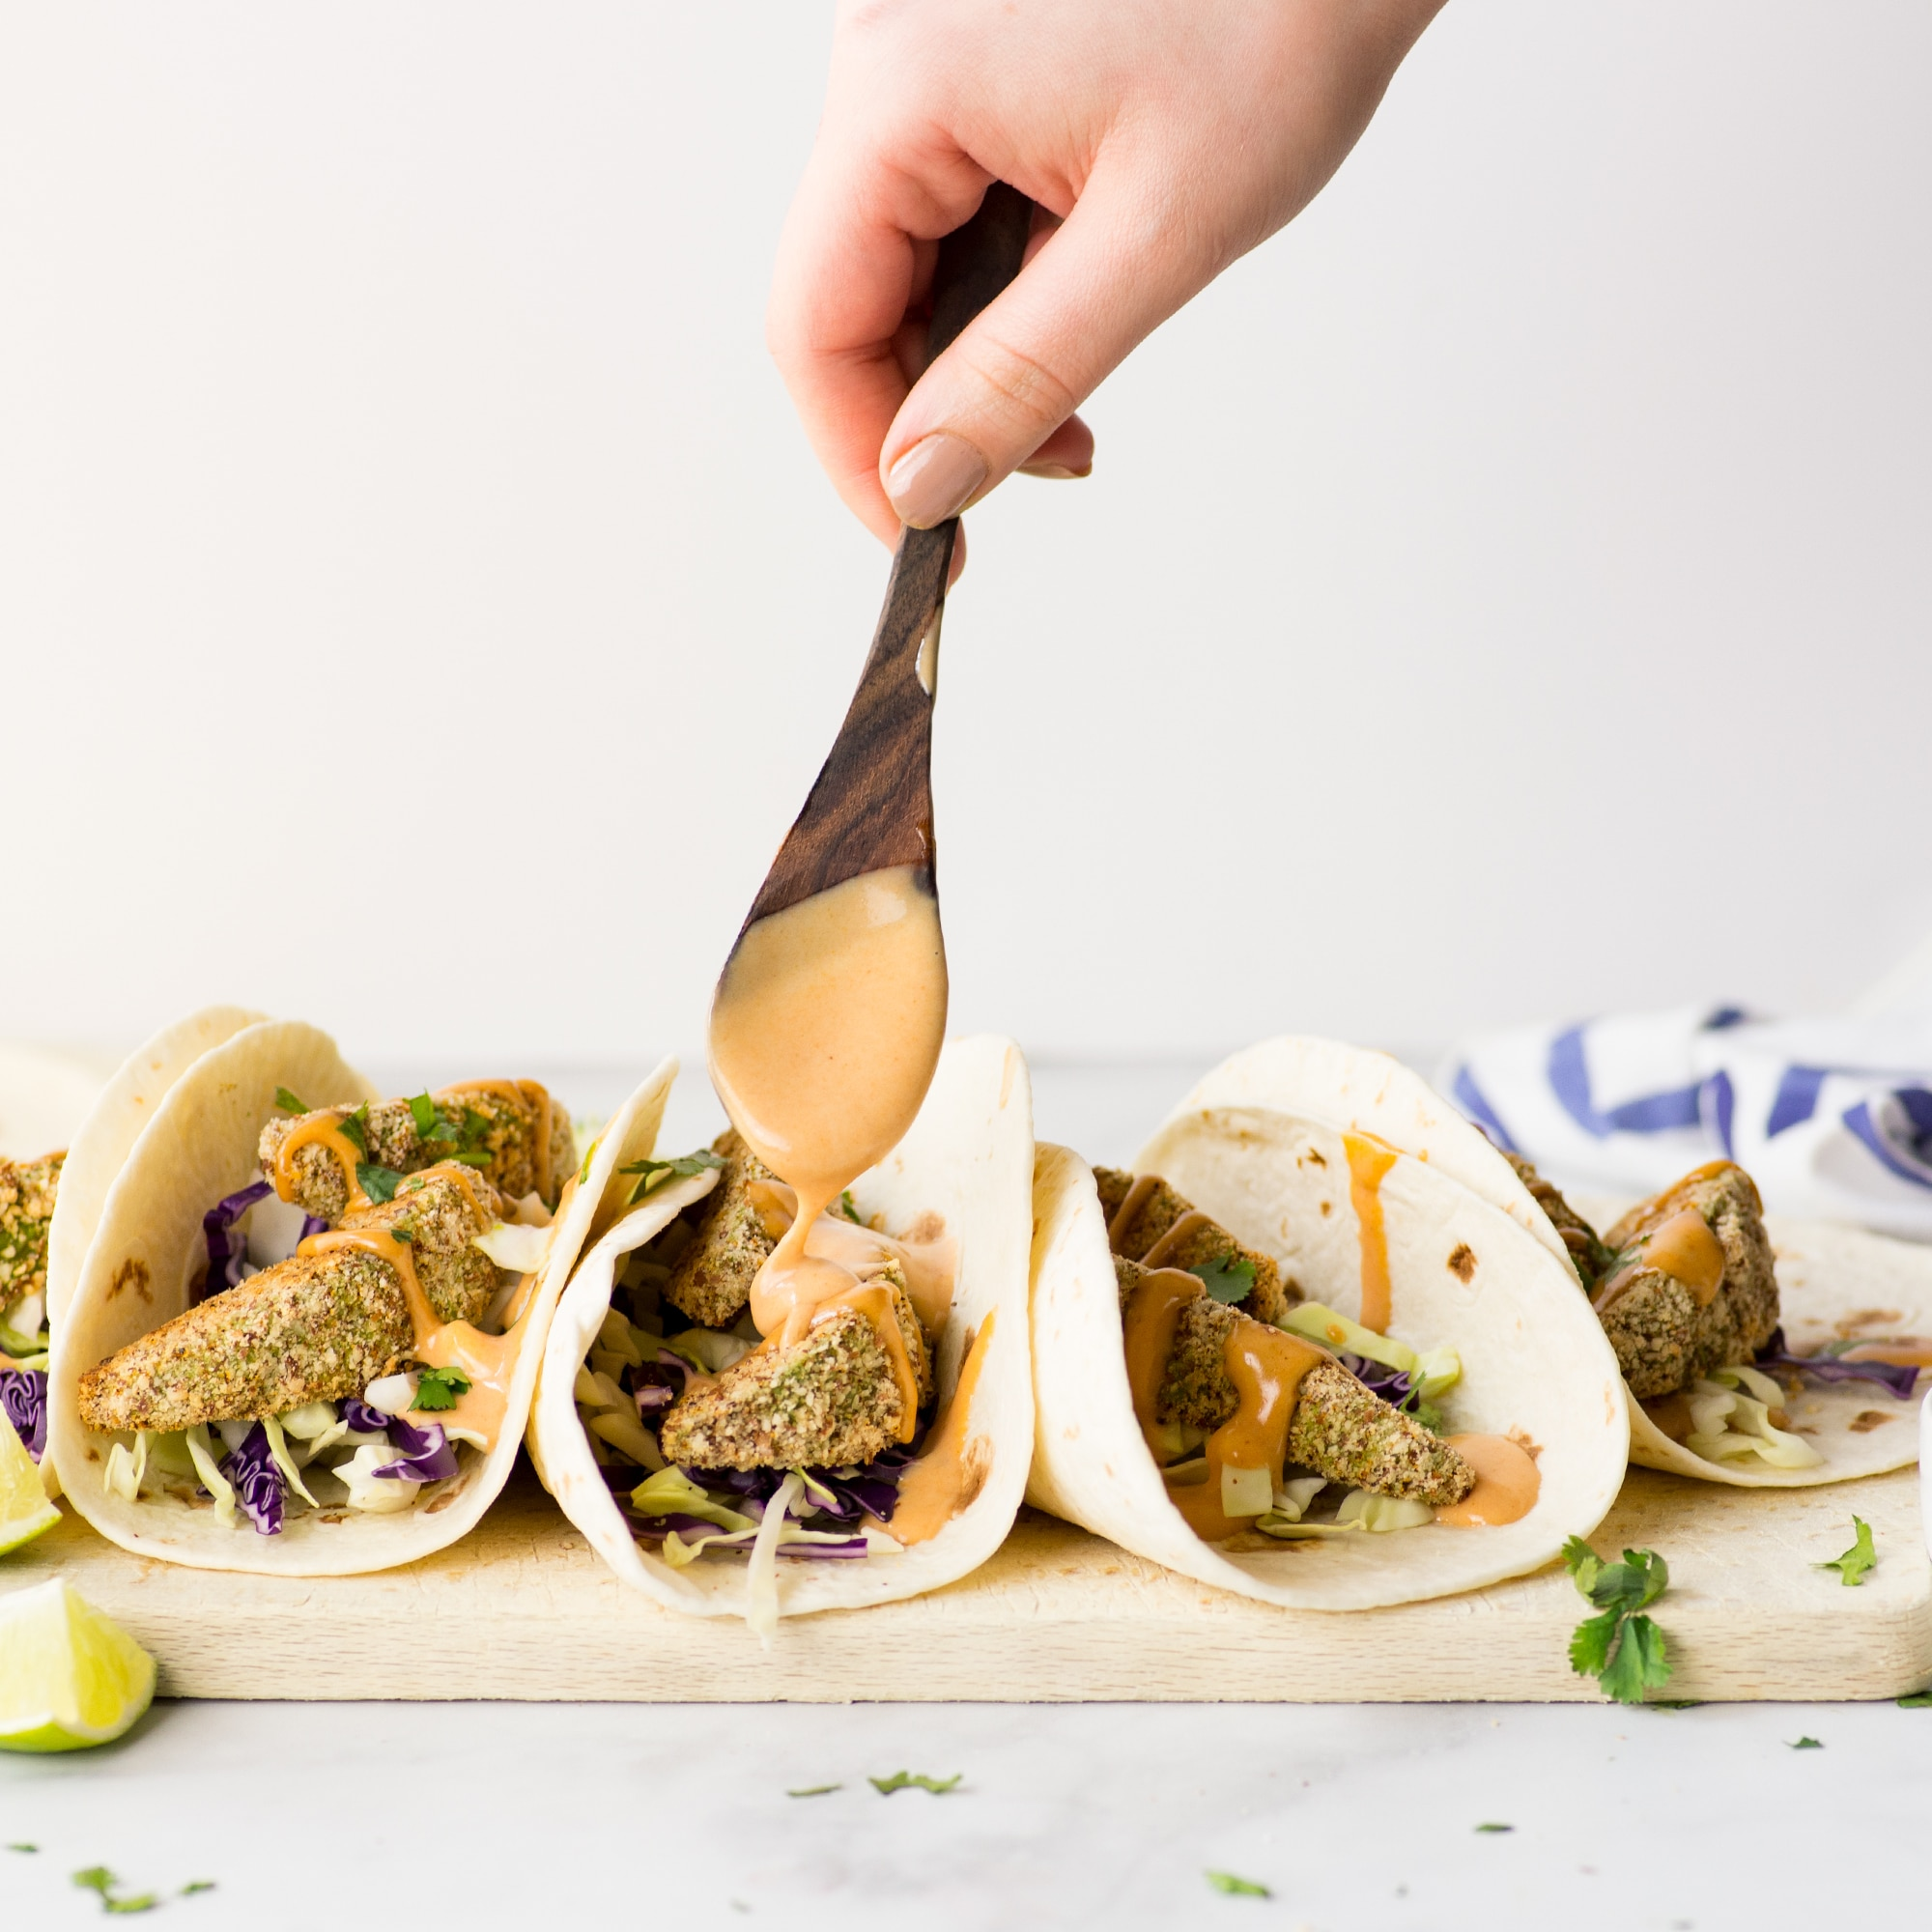 hand spooning chipotle sauce over vegan avocado tacos